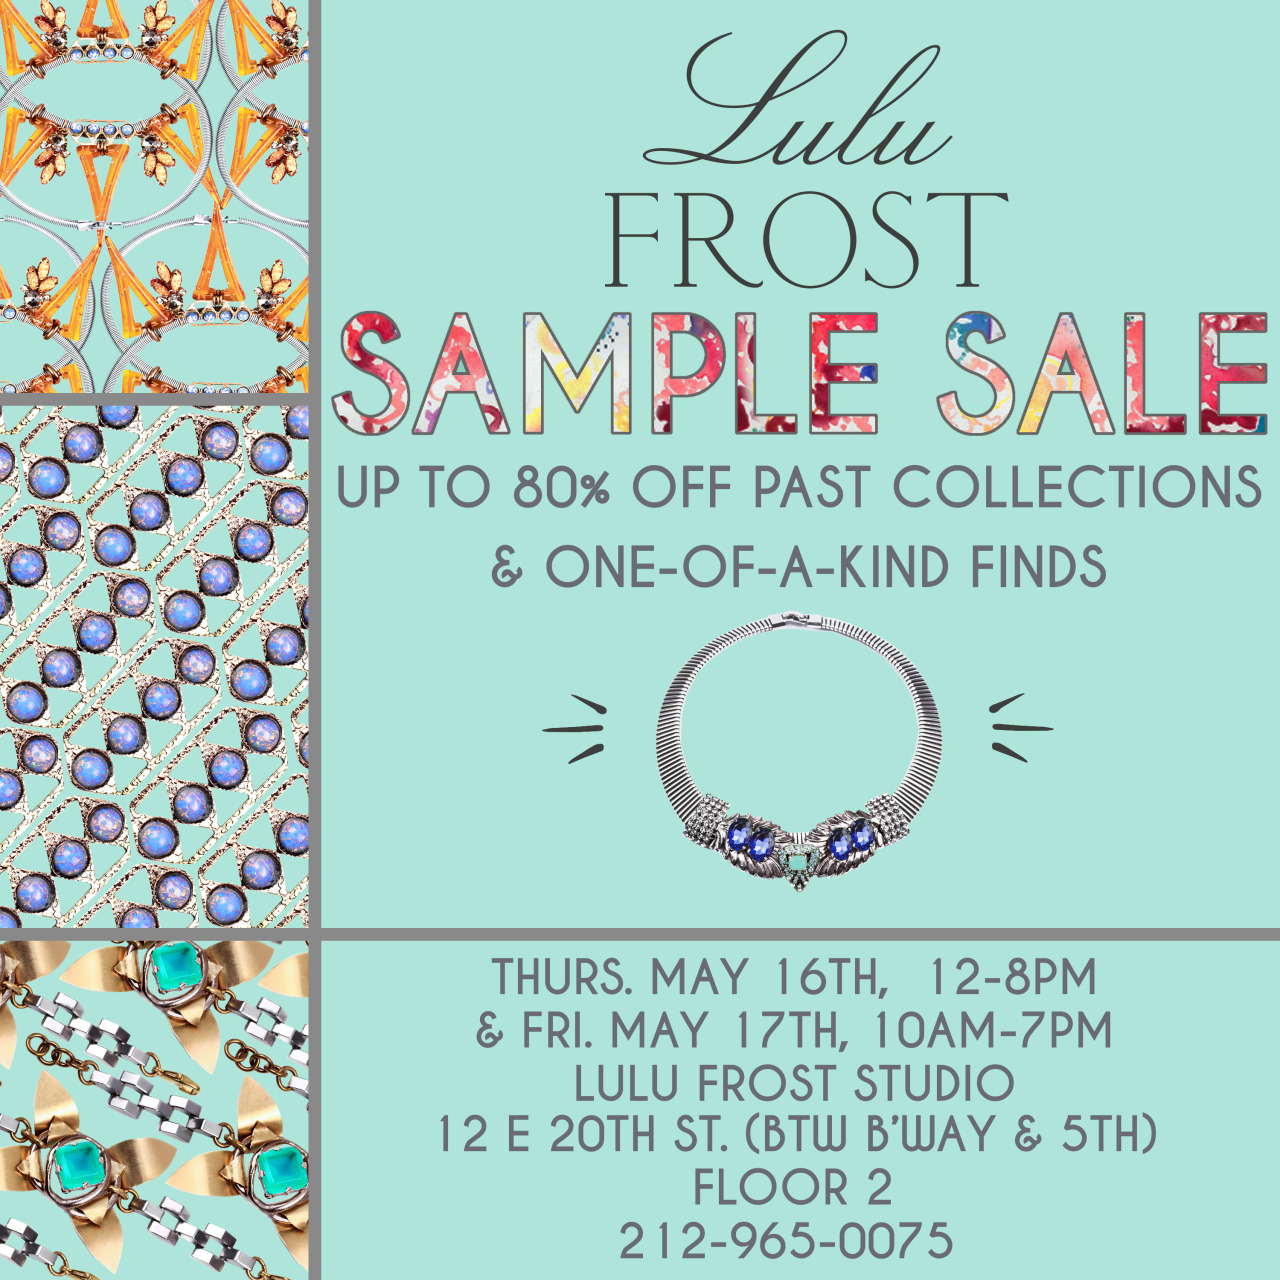 Another reminder… Sample sale starts this Thursday in our NYC studio!